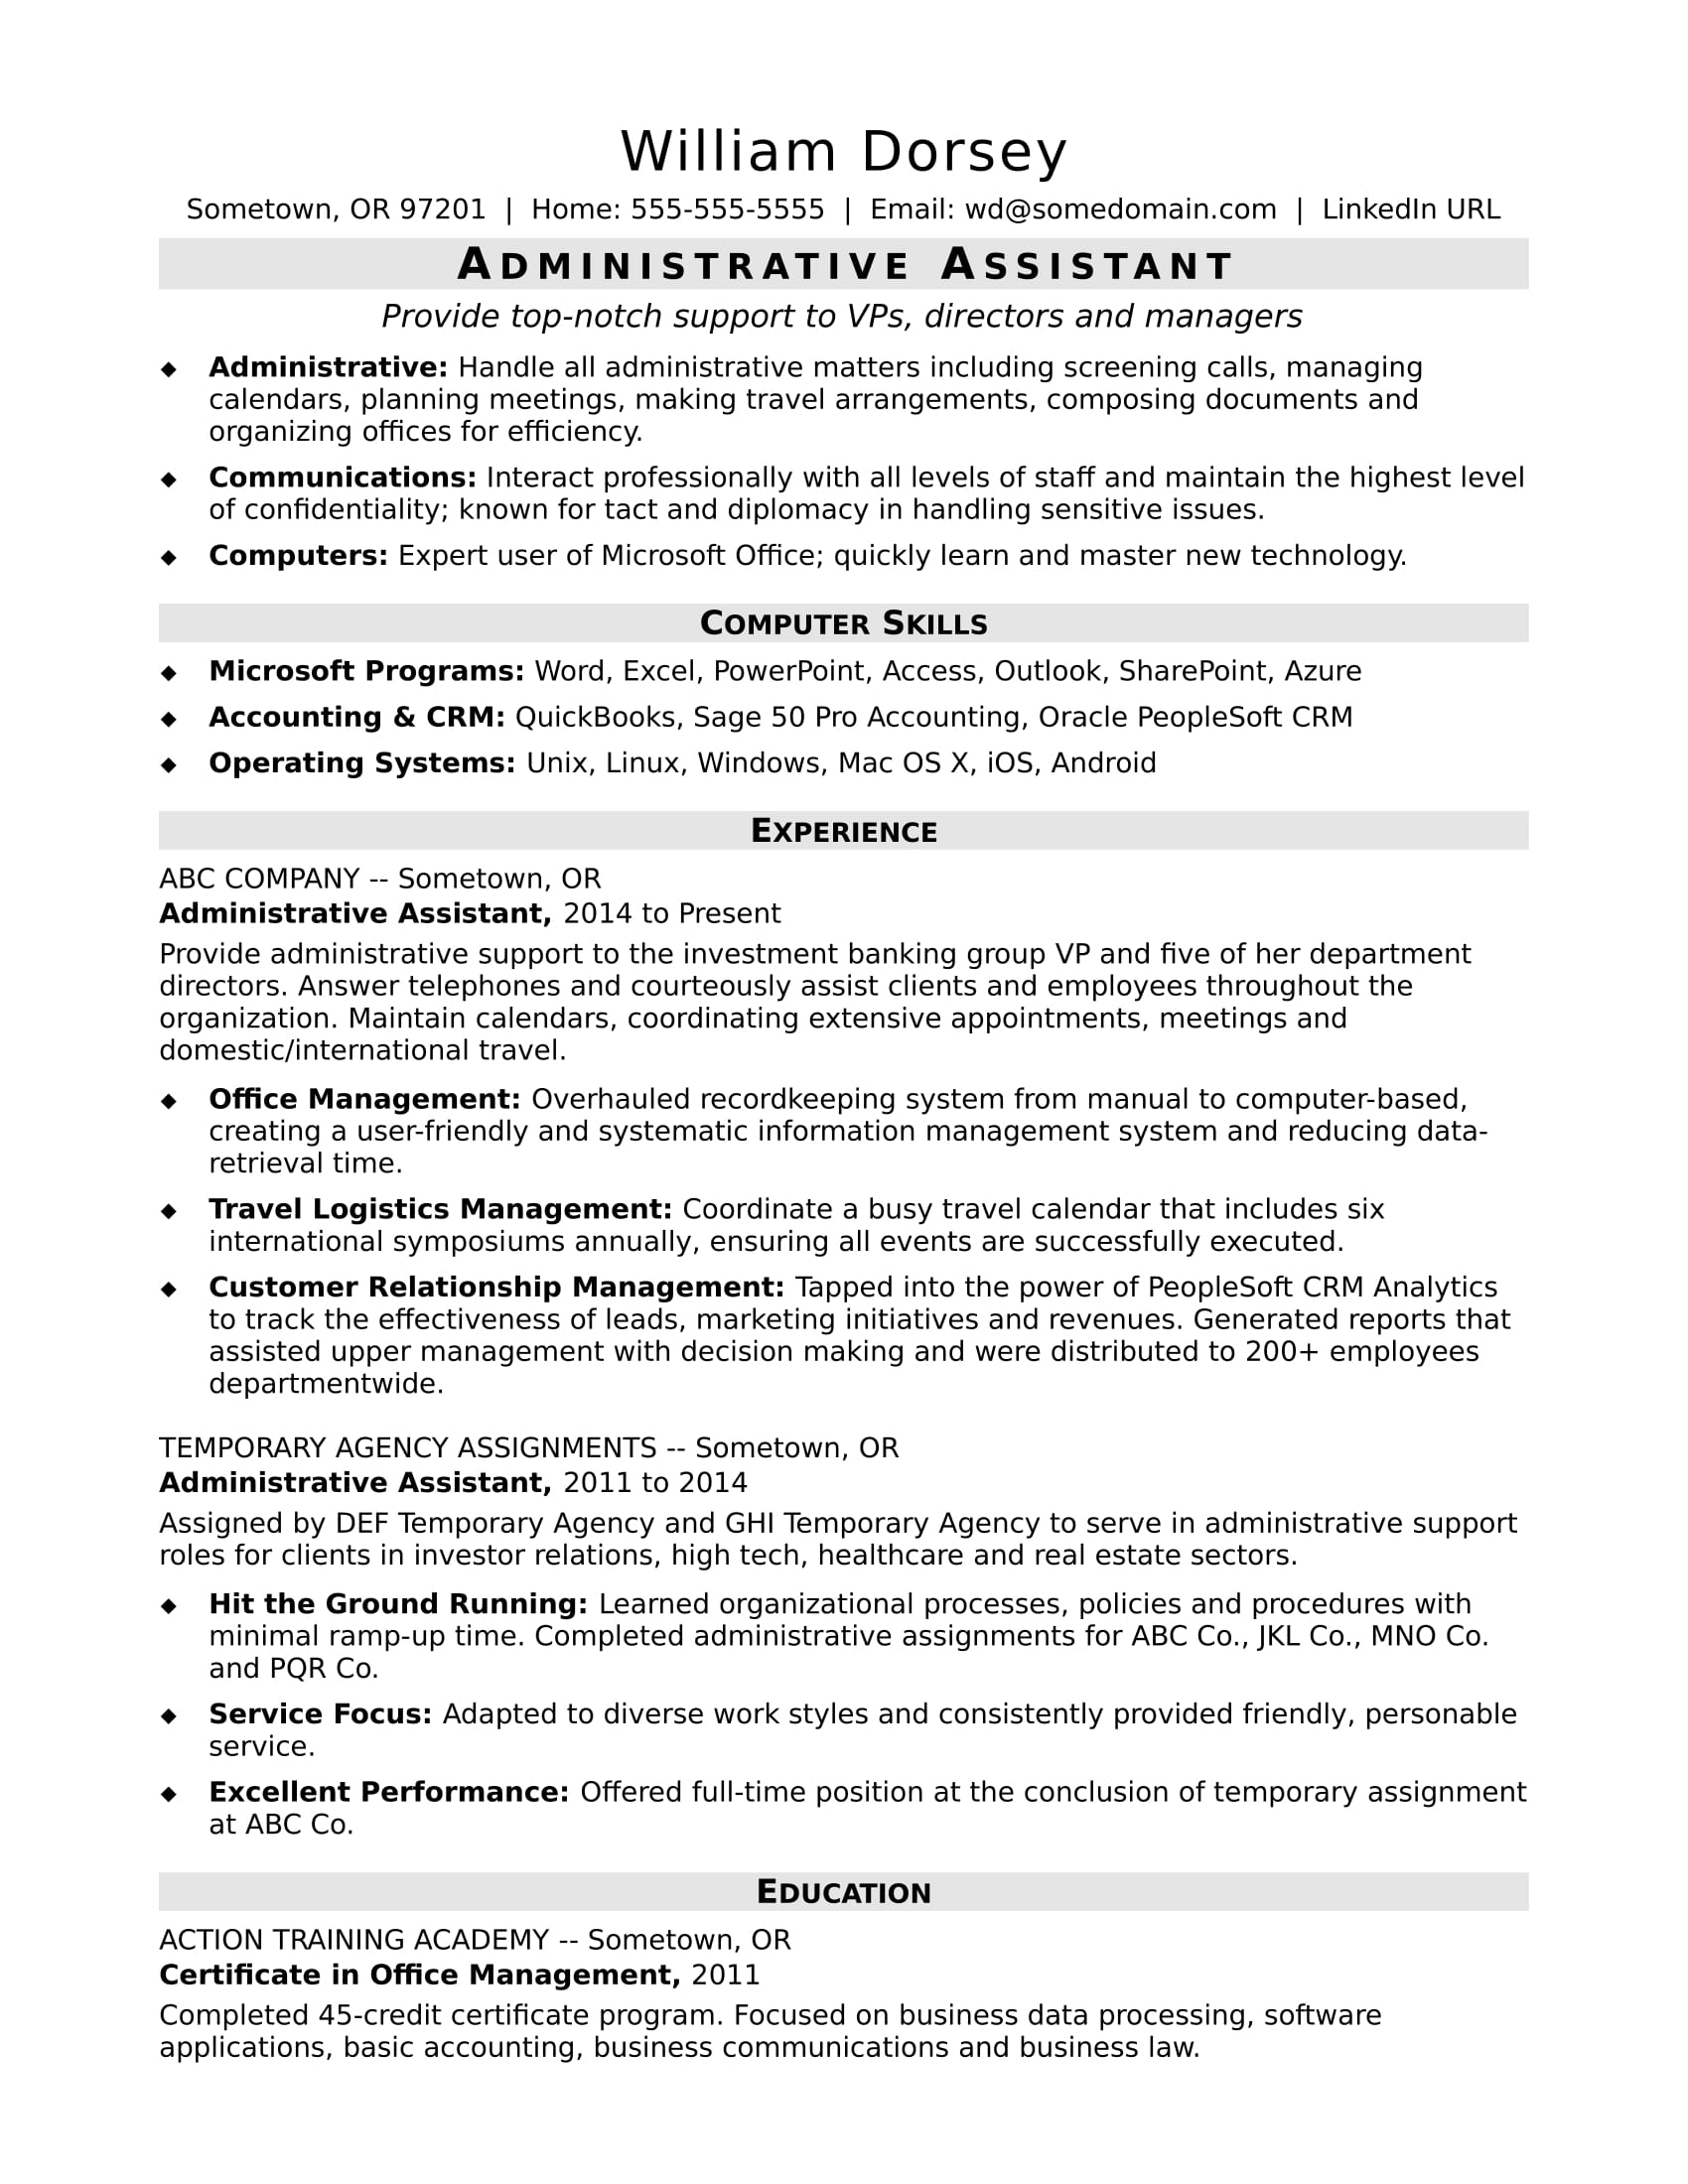 Lovely Sample Resume For A Midlevel Administrative Assistant  Examples Of Administrative Assistant Resumes